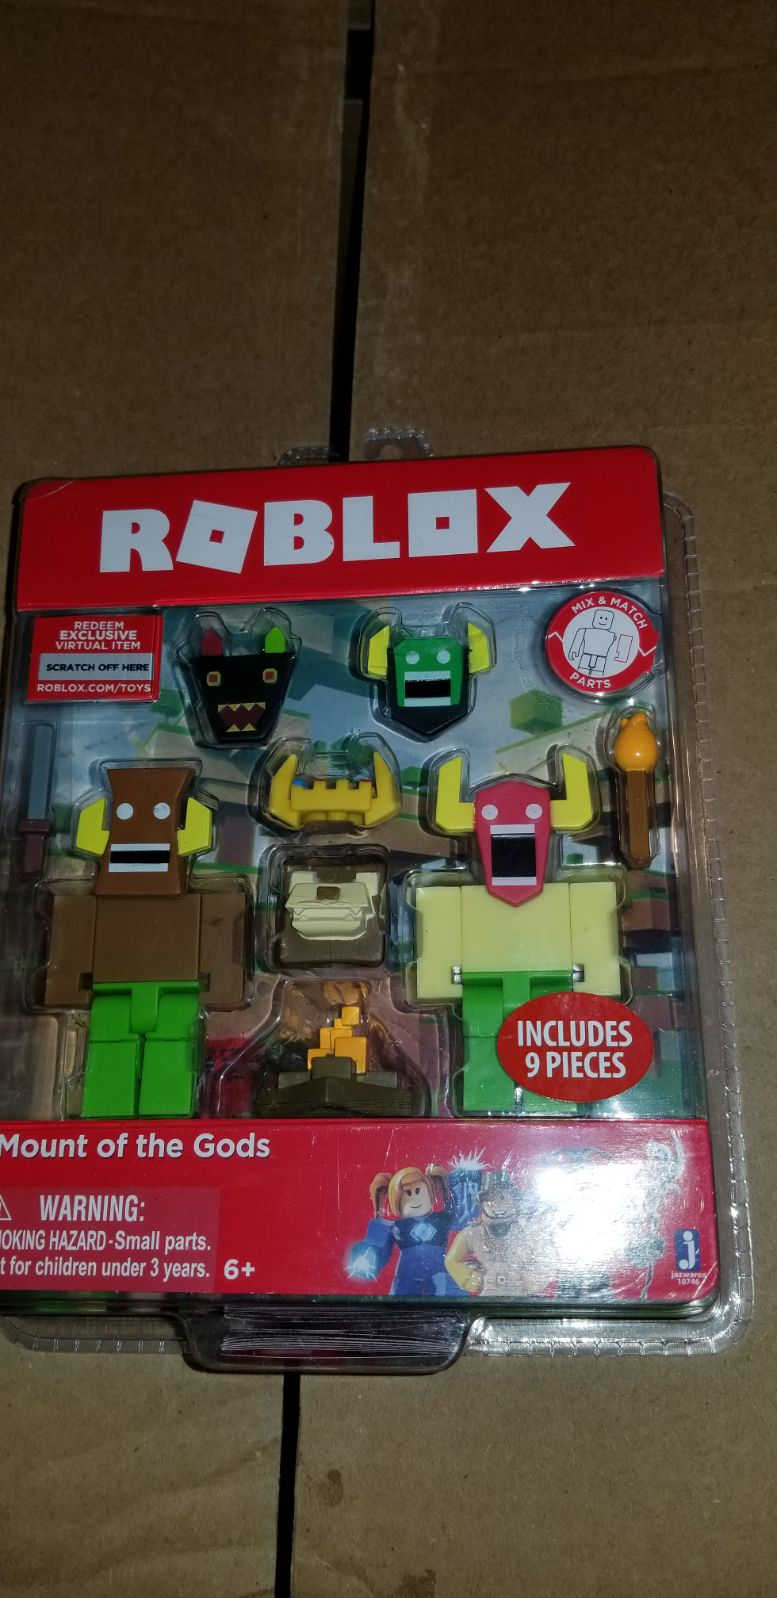 roblox toy Mount of the Gods brand new